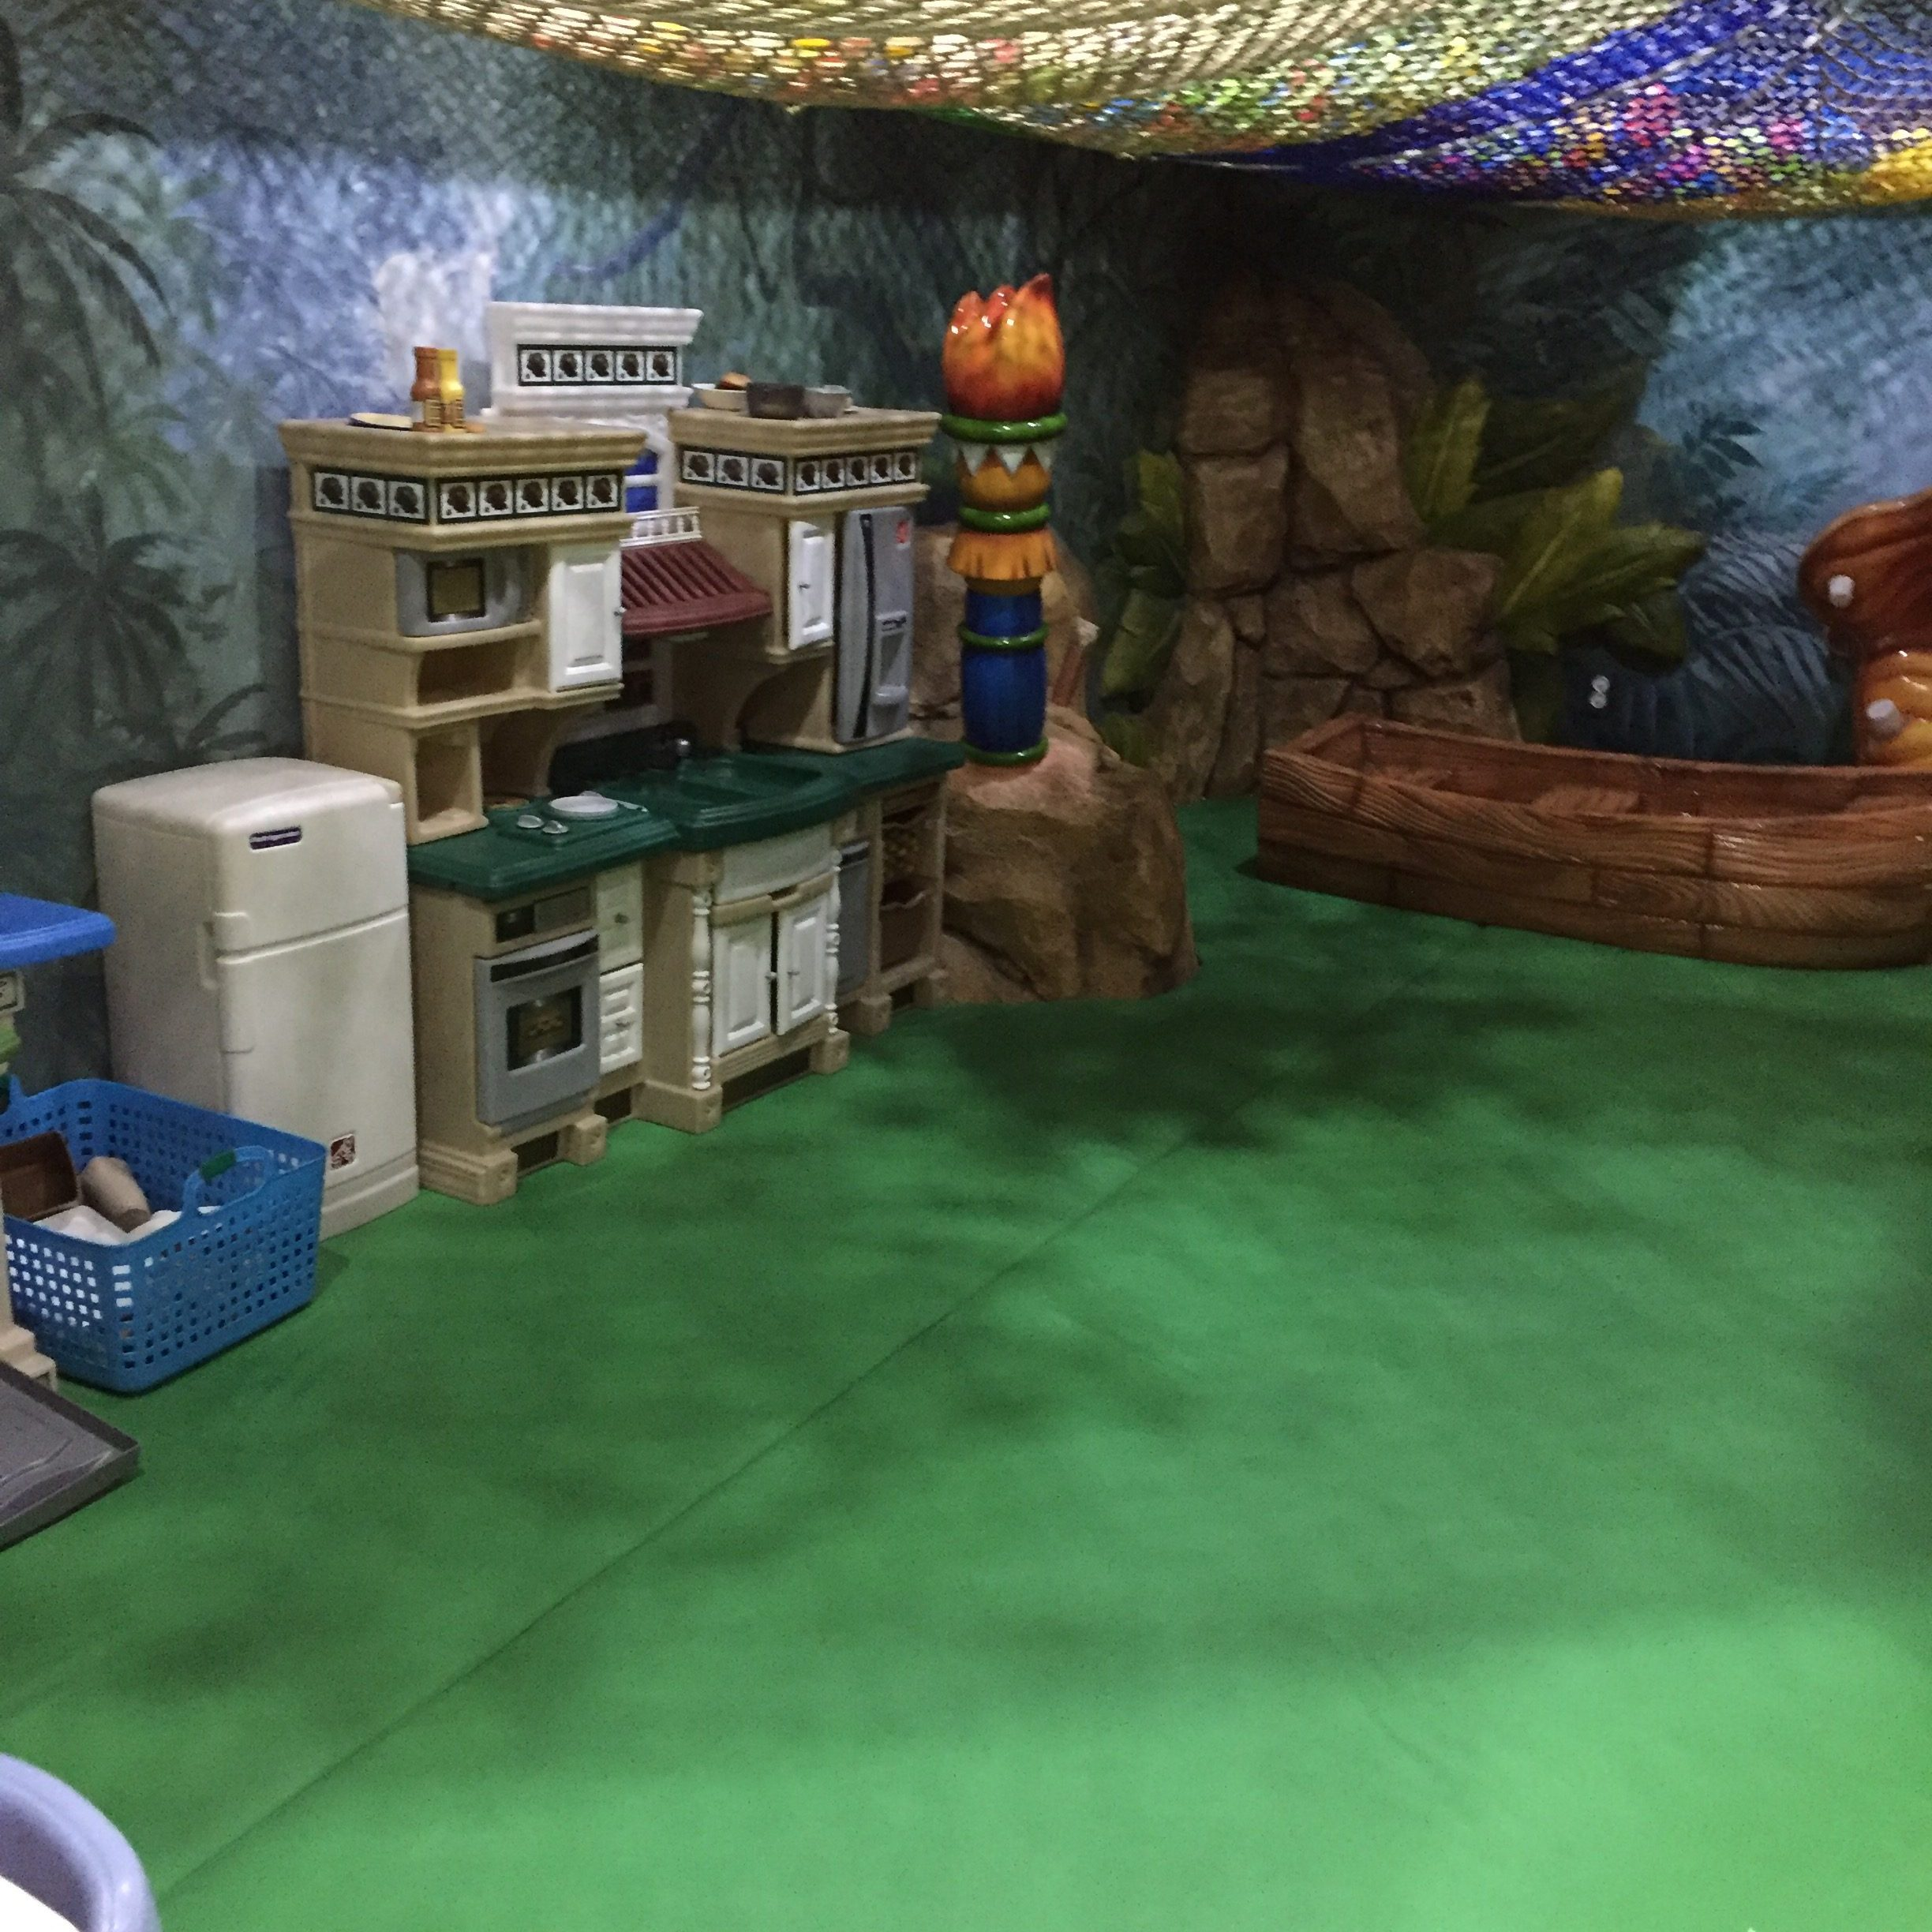 Kitchen play area at Jungle Kids Cafe